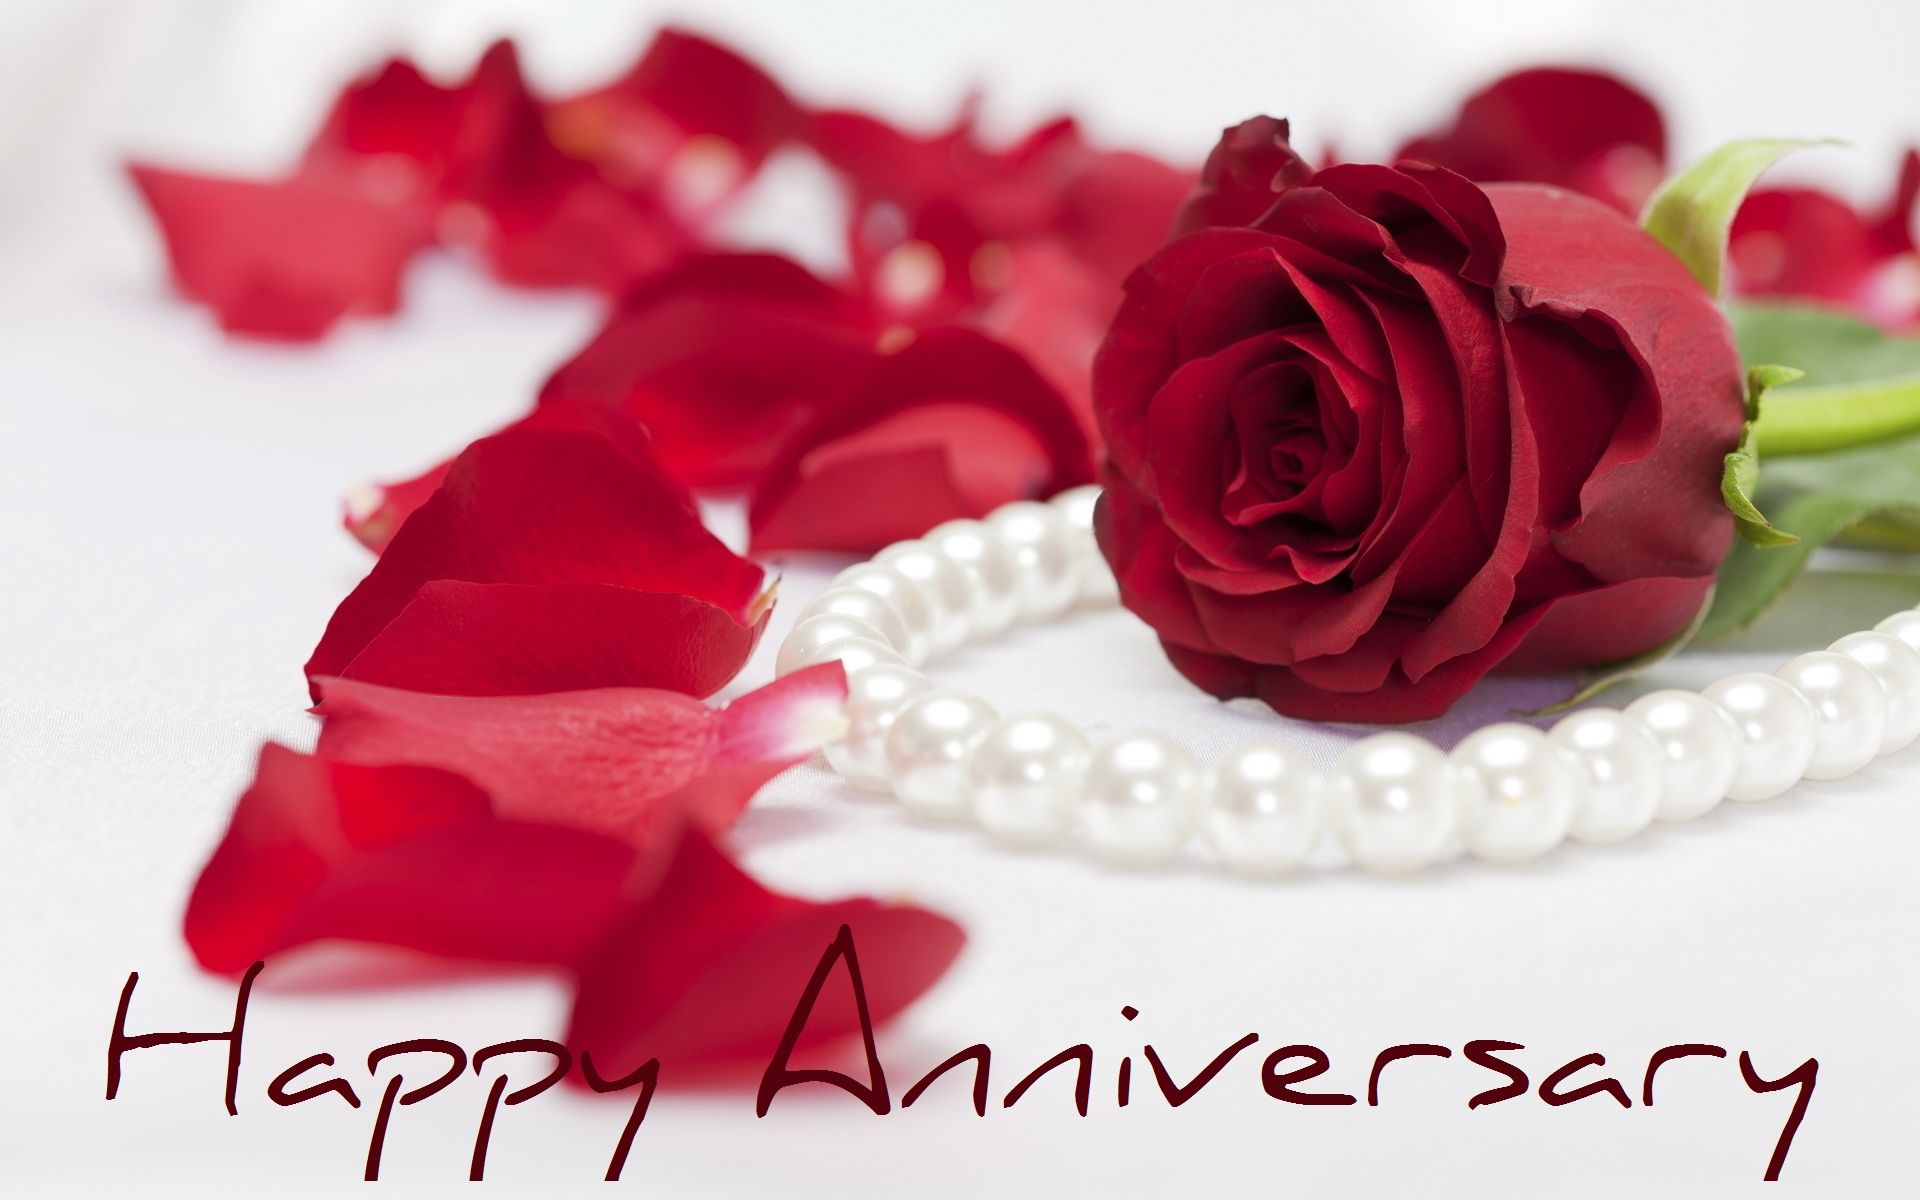 Beautiful Happy Anniversary Quote Image Pictures, Photos